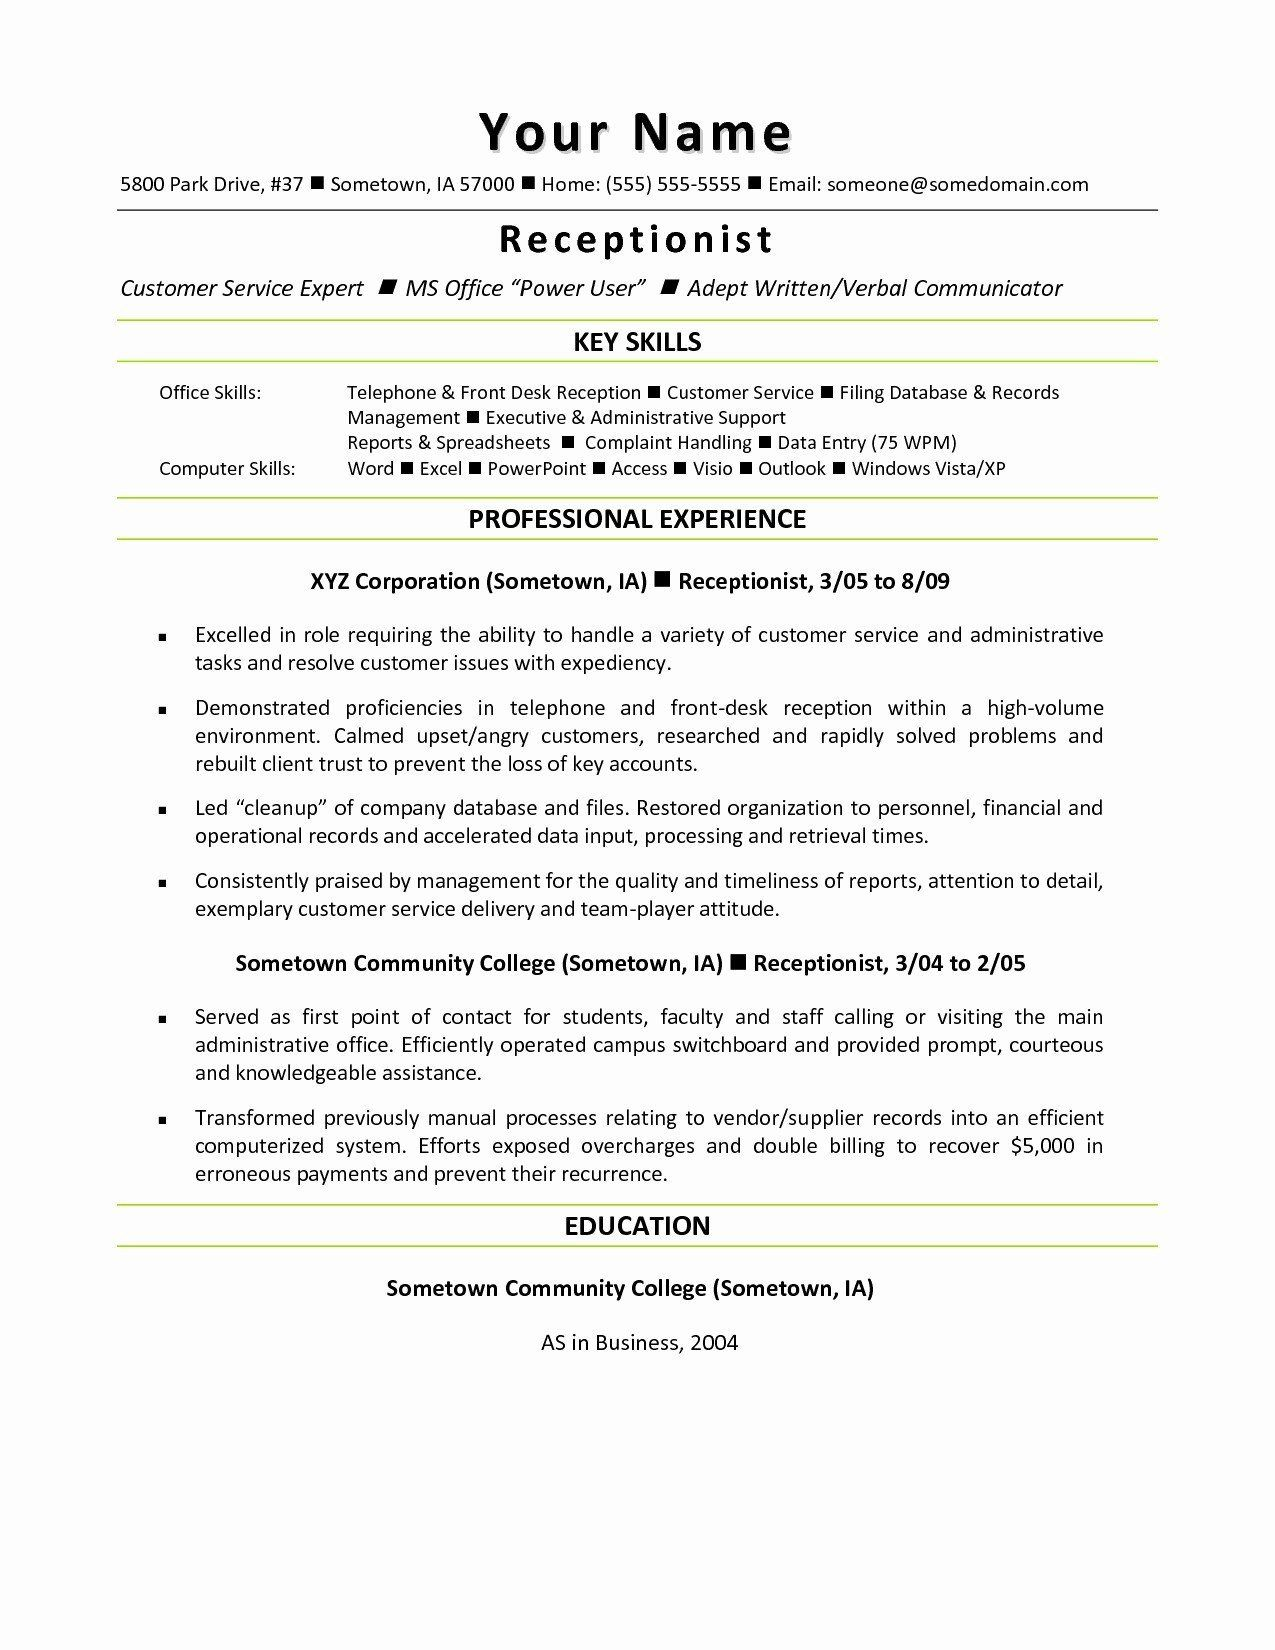 Shipping And Receiving Clerk Resume Elegant Shipping And Receiving Resume Samples Examples 15 Resu Administrative Assistant Resume Resume Examples Receptionist